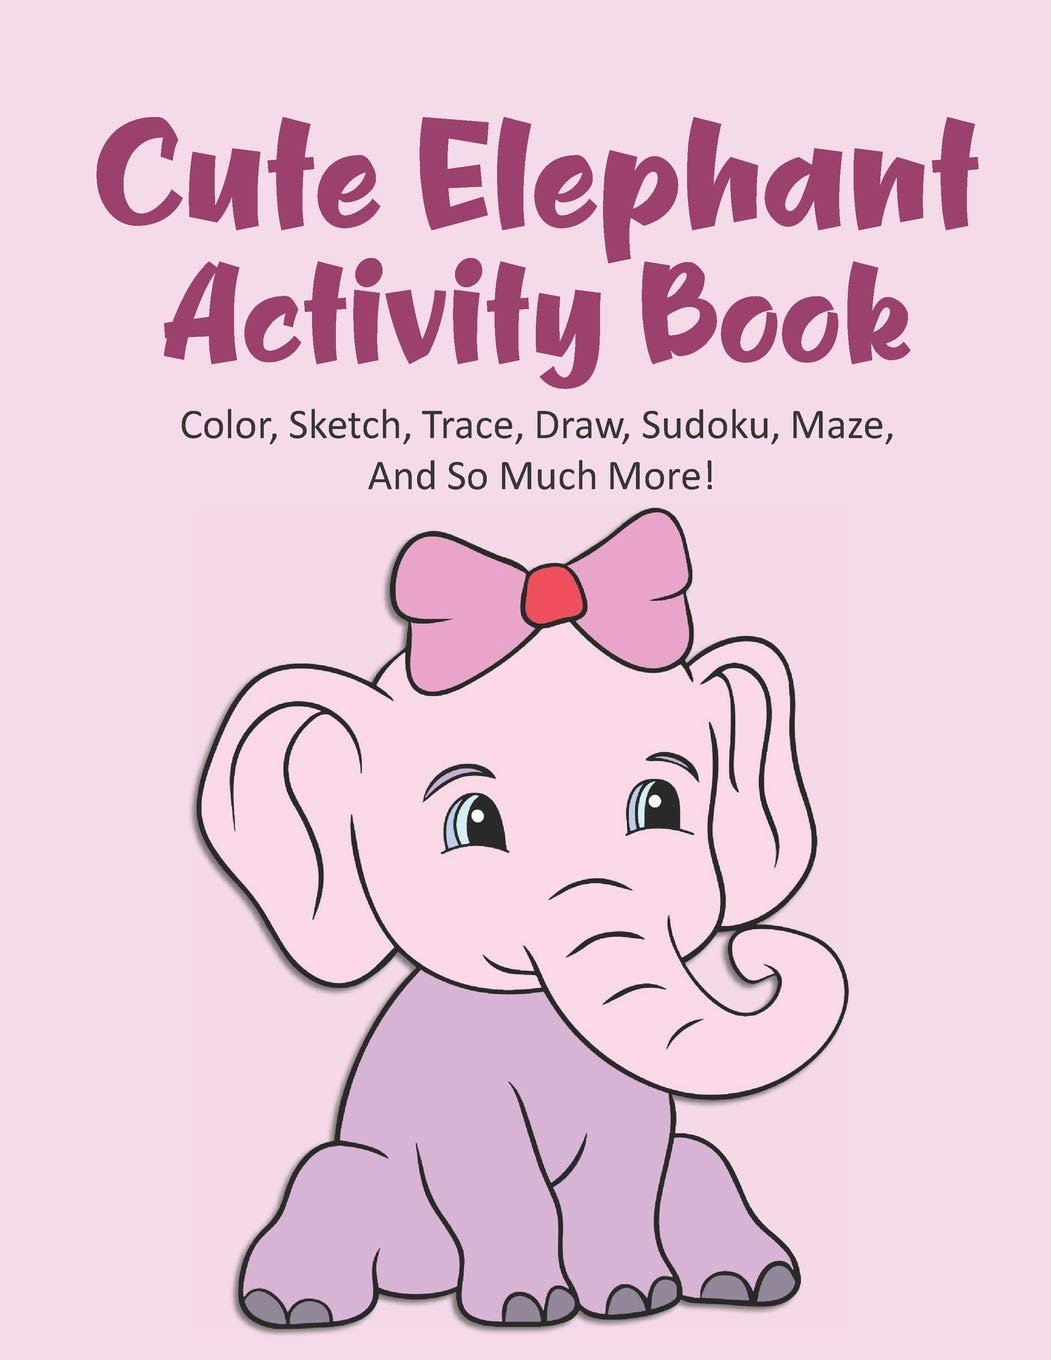 - Cute Elephant Activity Book Color, Sketch, Trace, Draw, Sudoku